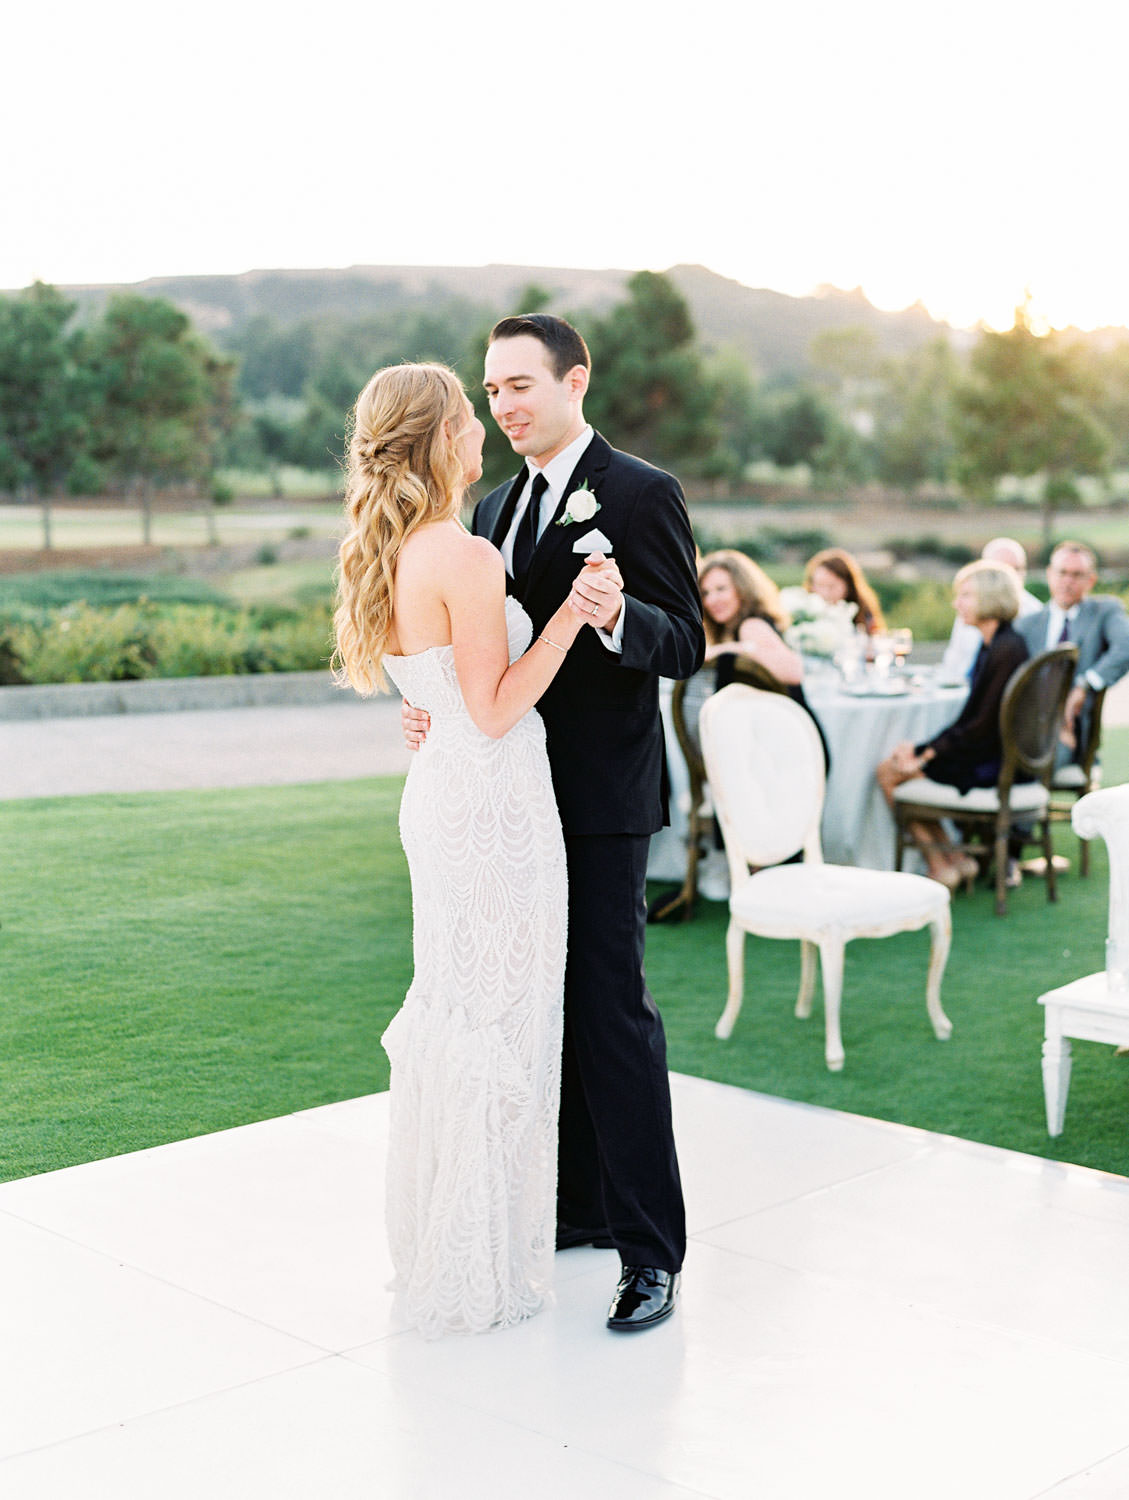 Film photo of an al fresco reception first dance with bride and groom on a white dance floor. Del Mar Country Club Wedding by Cavin Elizabeth Photography